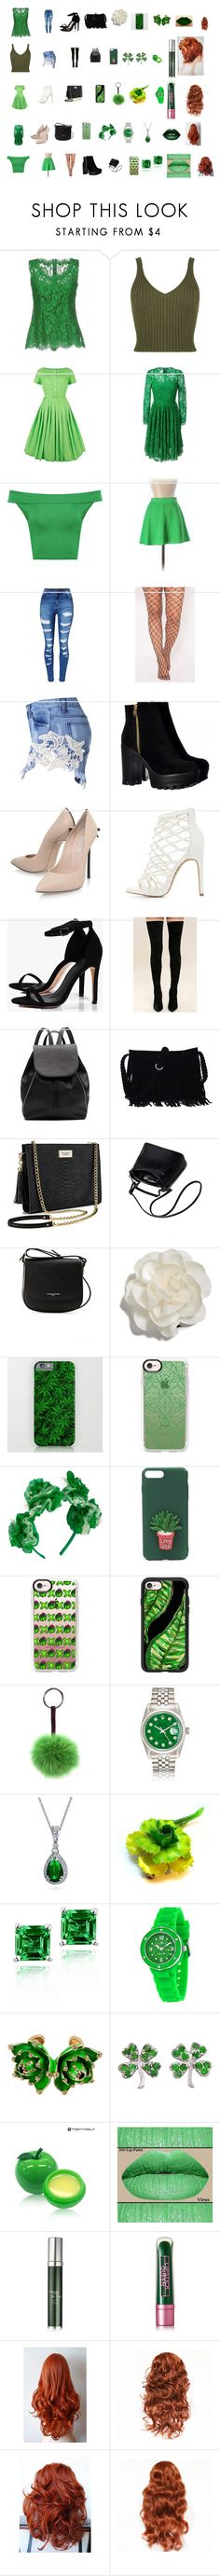 """Everything Poison Ivy"" by audramwalker on Polyvore featuring Dolce&Gabbana, WearAll, Zoe Vine, Naven, WithChic, Casadei, Charlotte Russe, Boohoo, Cape Robbin and Witchery"